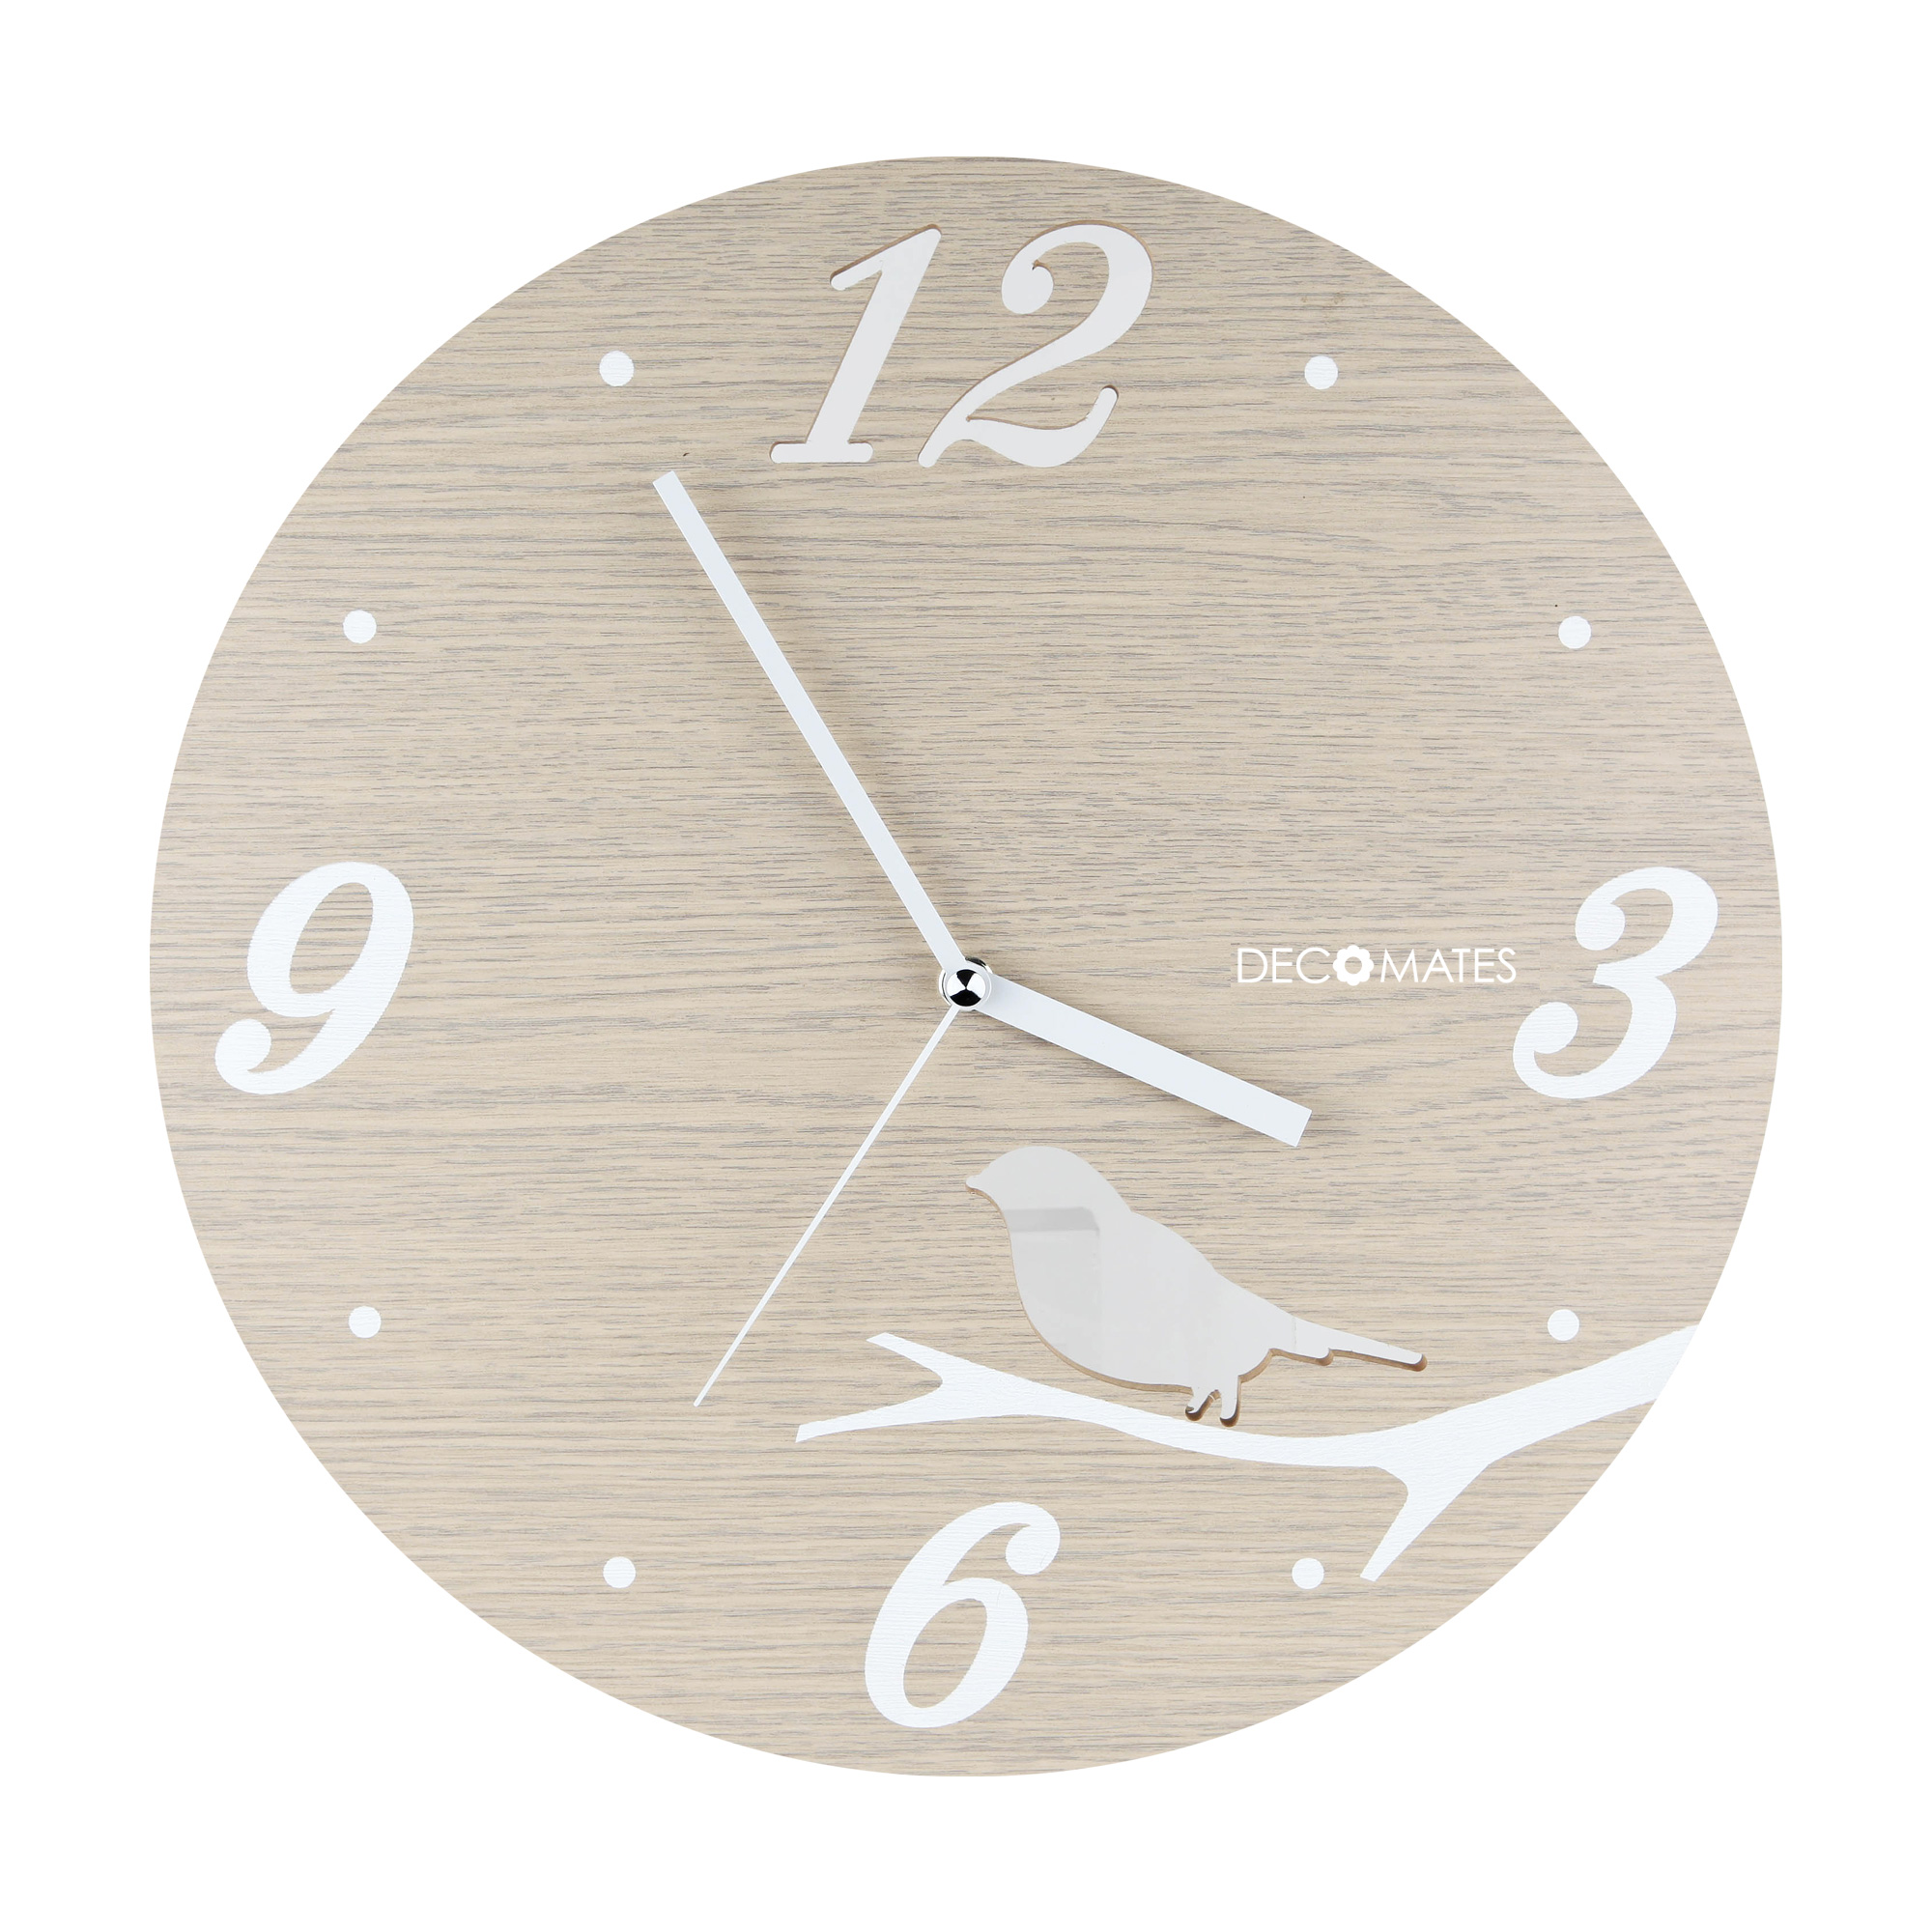 DecoMates NonTicking Silent Wall Clock Walmartcom